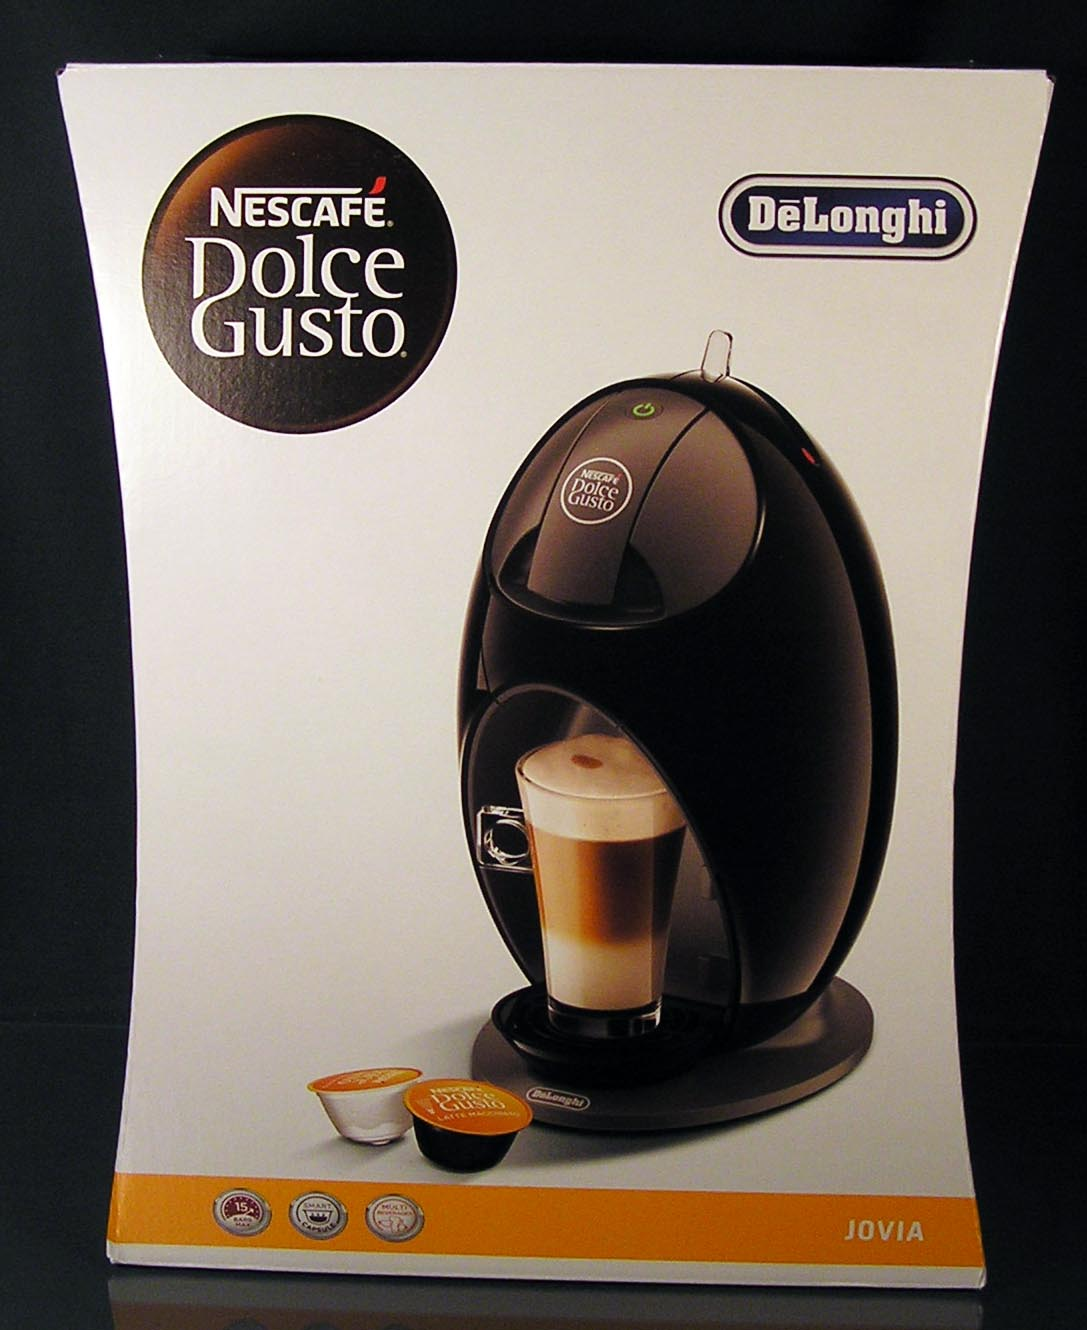 delonghi jovia schwarz edg 250 b nescaf dolce gusto kaffee kapselmaschine neu ebay. Black Bedroom Furniture Sets. Home Design Ideas